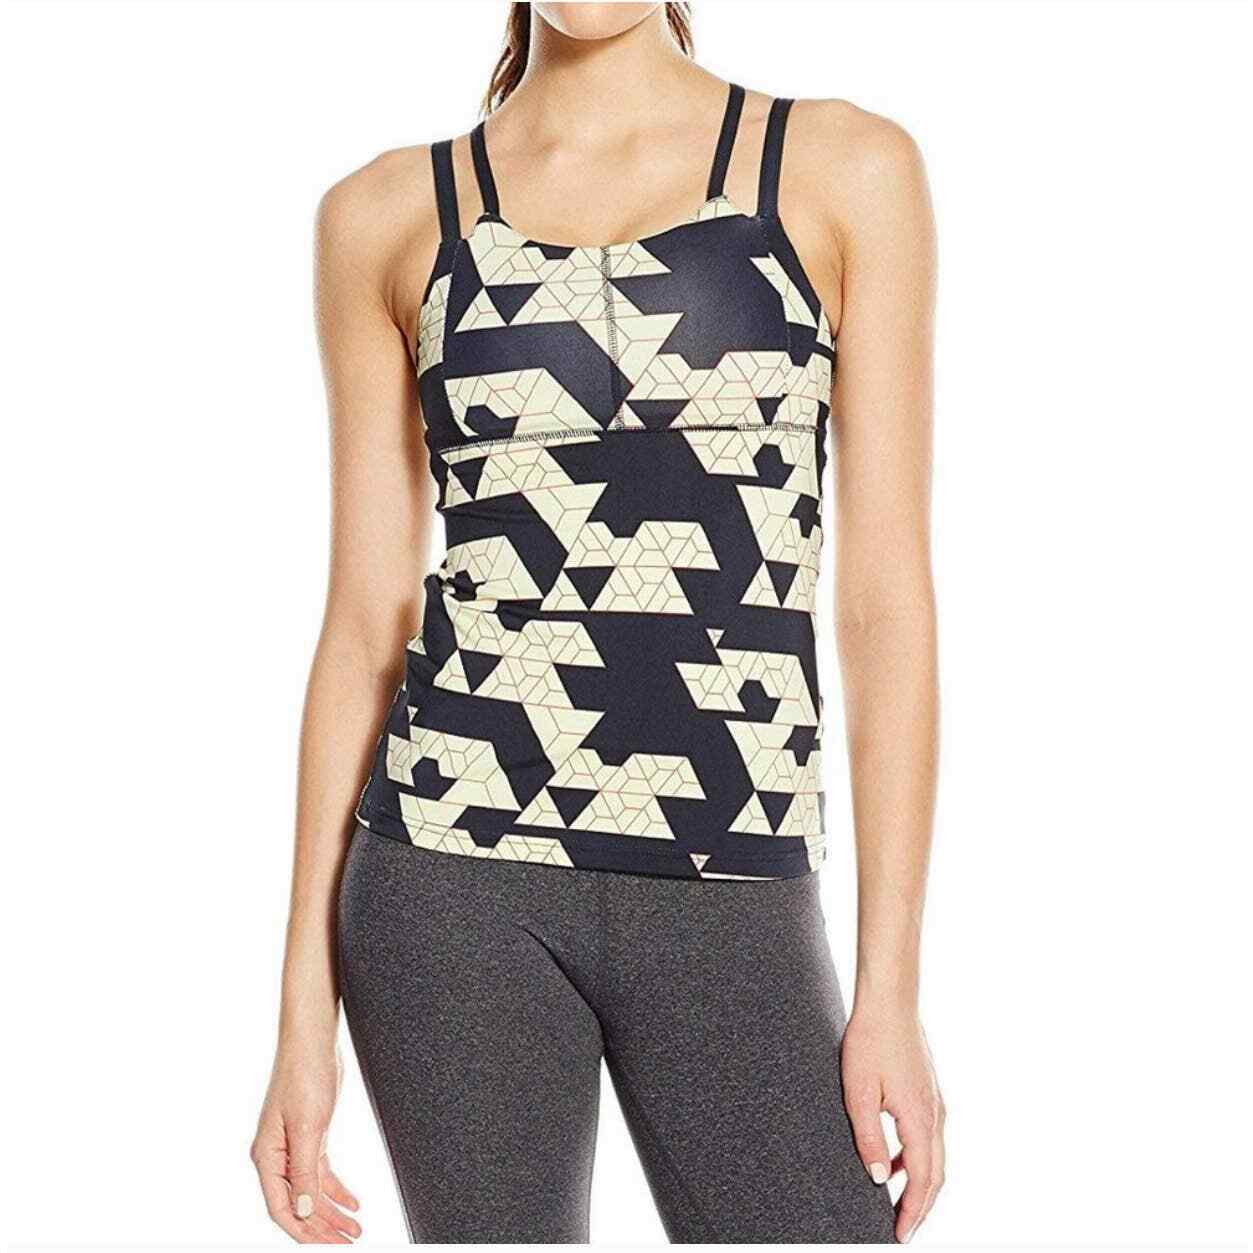 Oiselle Womens Verrazano Geometric Strappy Tank Top Size 4 Gym Yoga Active